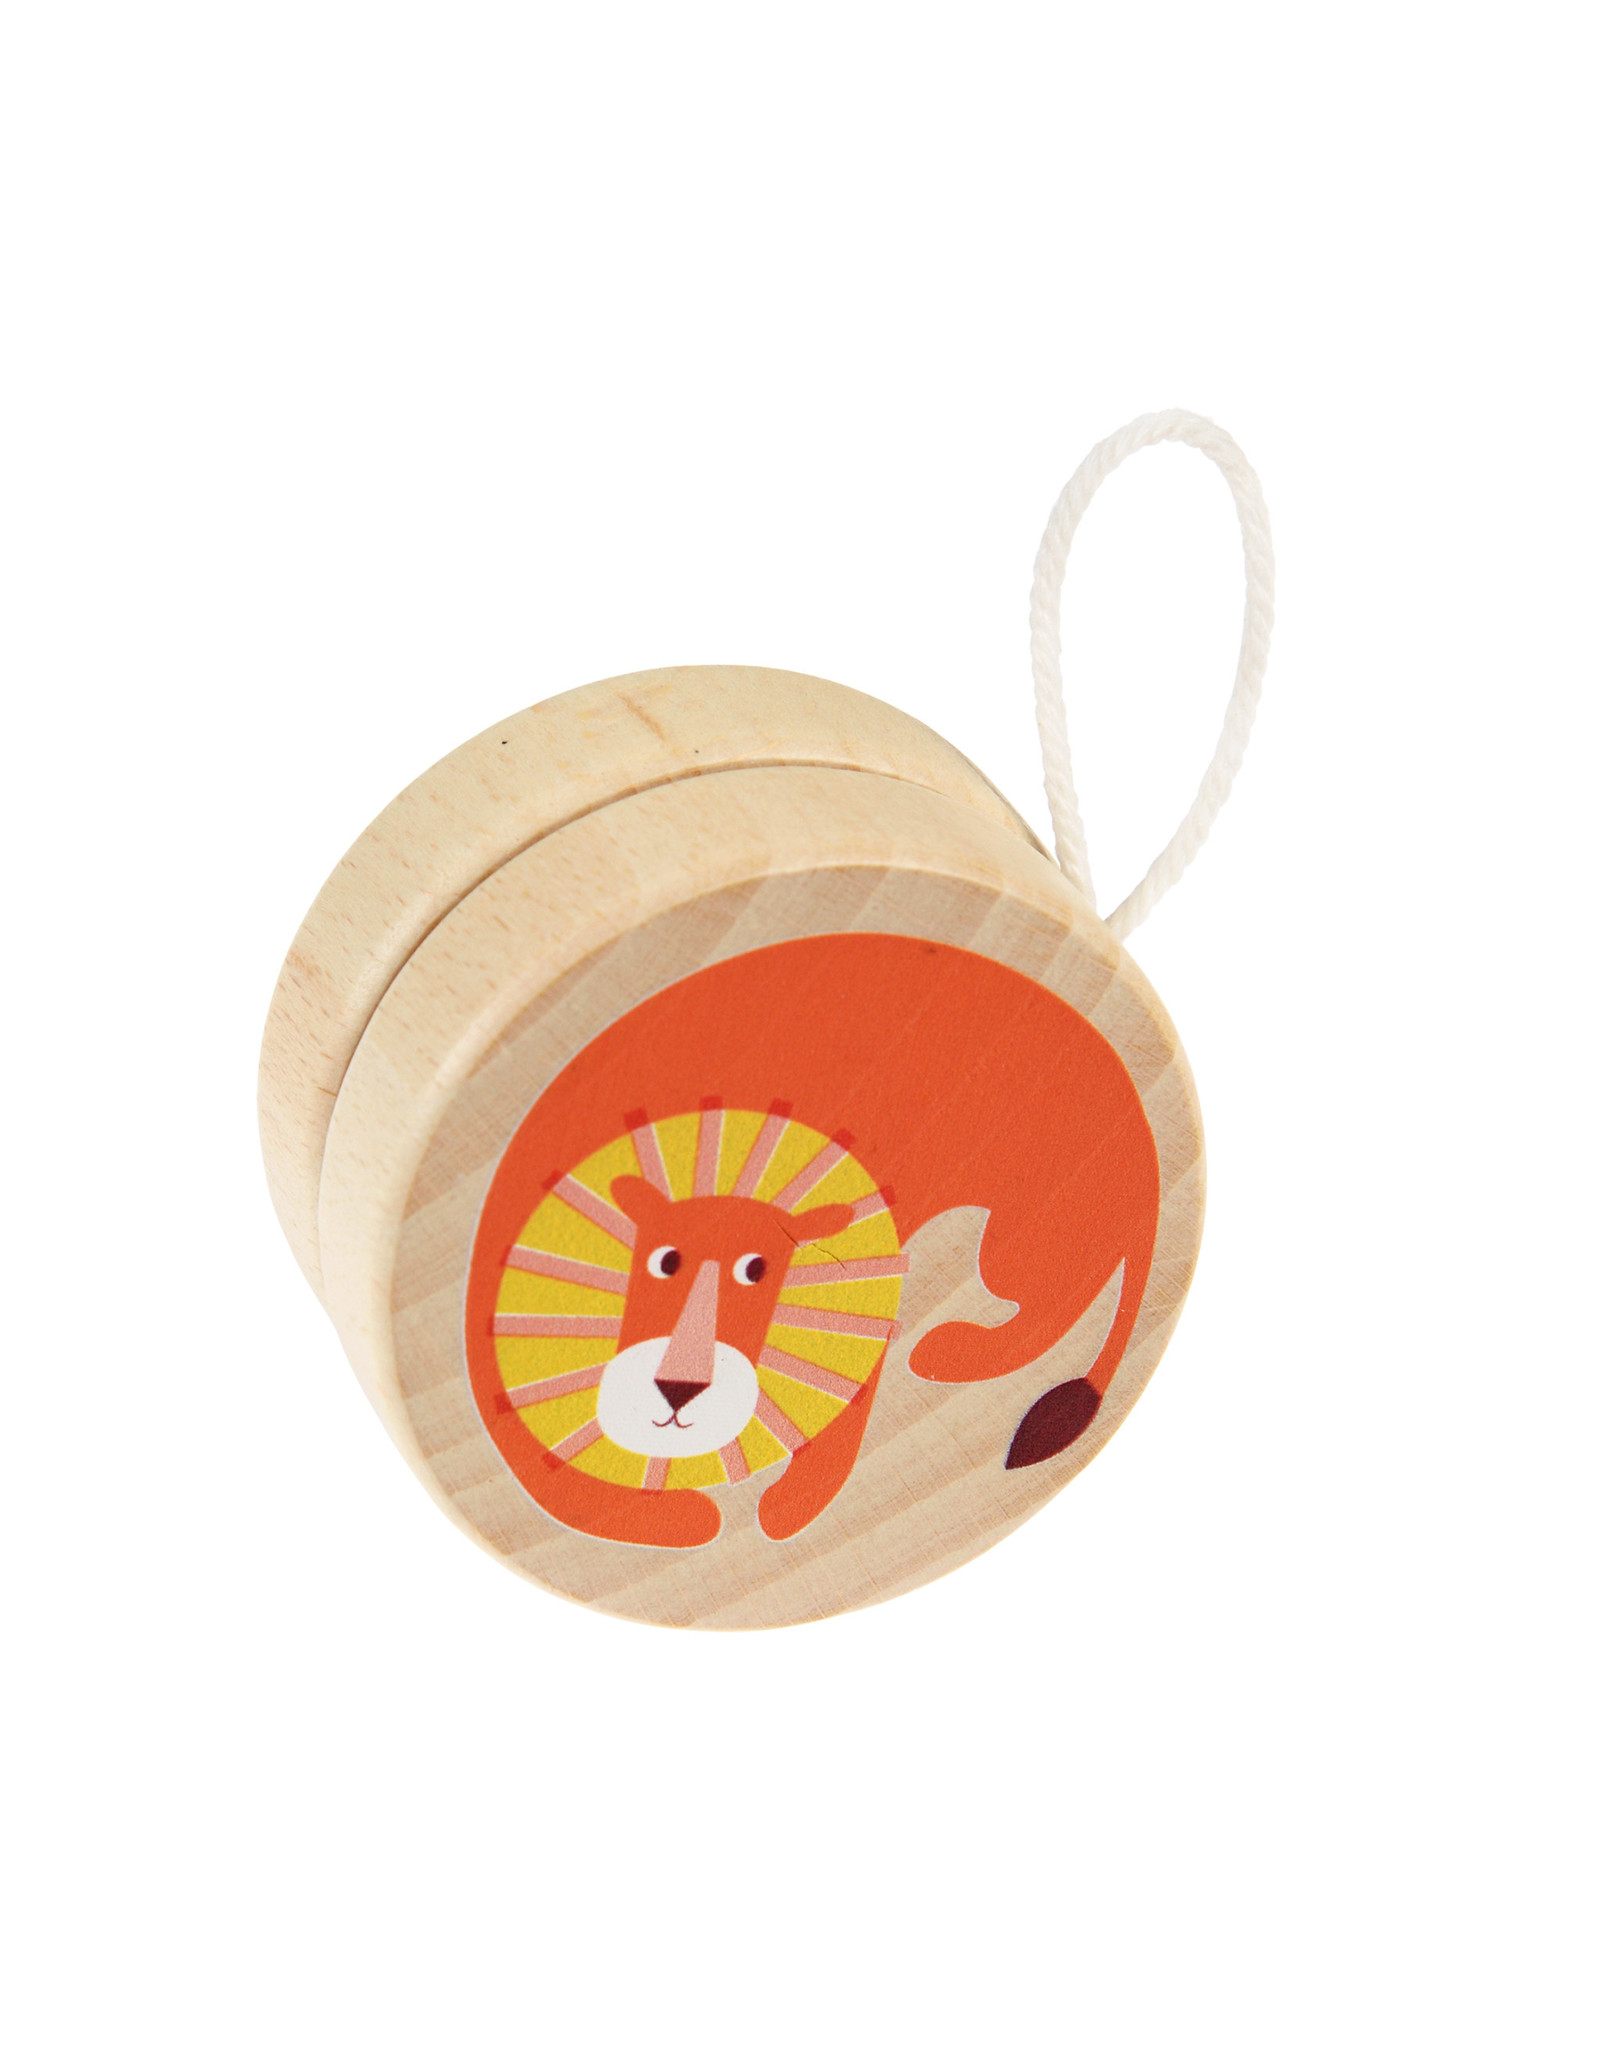 Wooden YoYo Toy